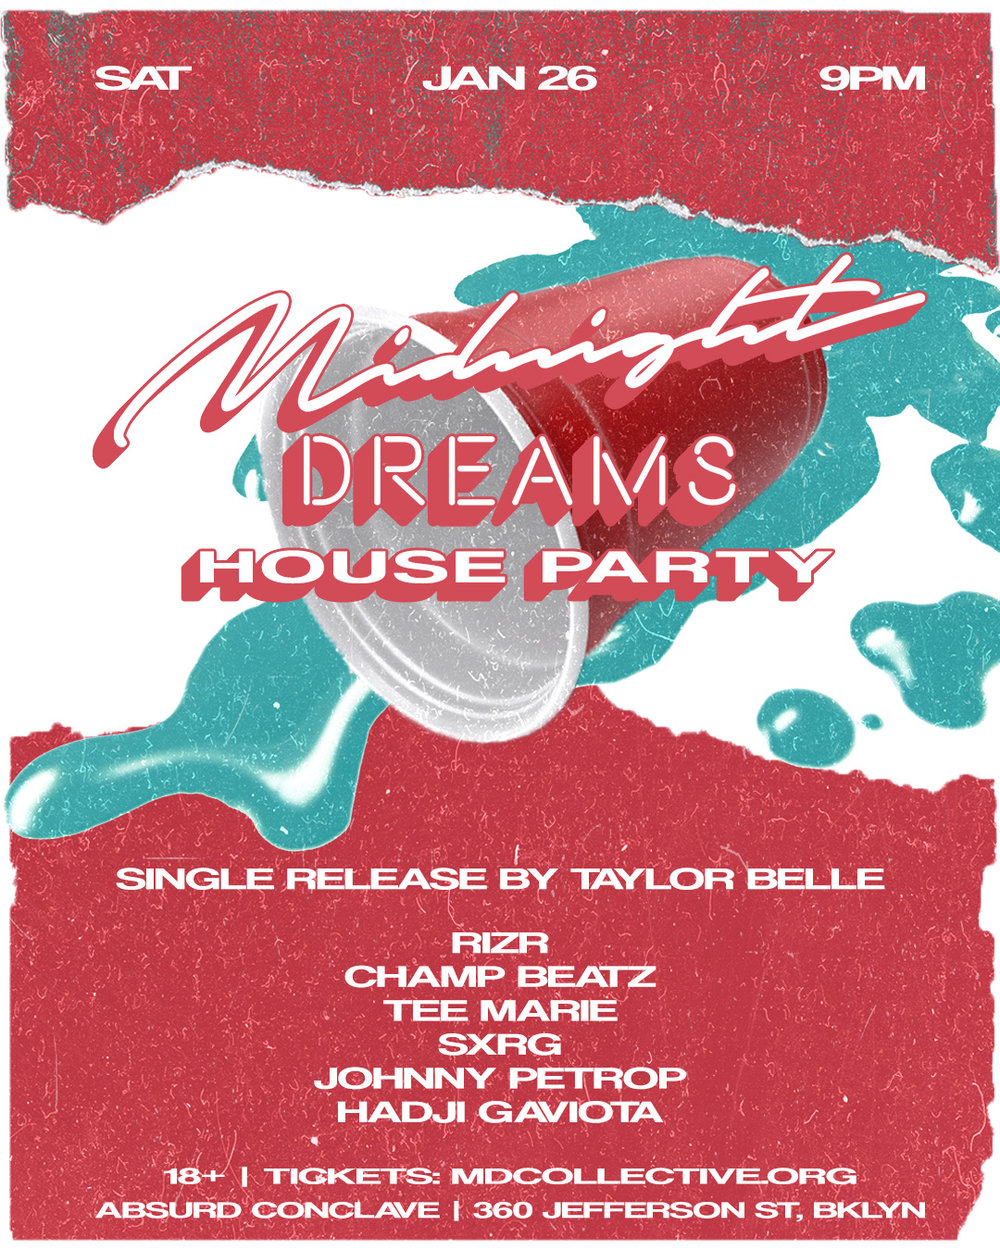 Midnight-Dreams-House-Party-(SINGLE-RELEASE).jpg